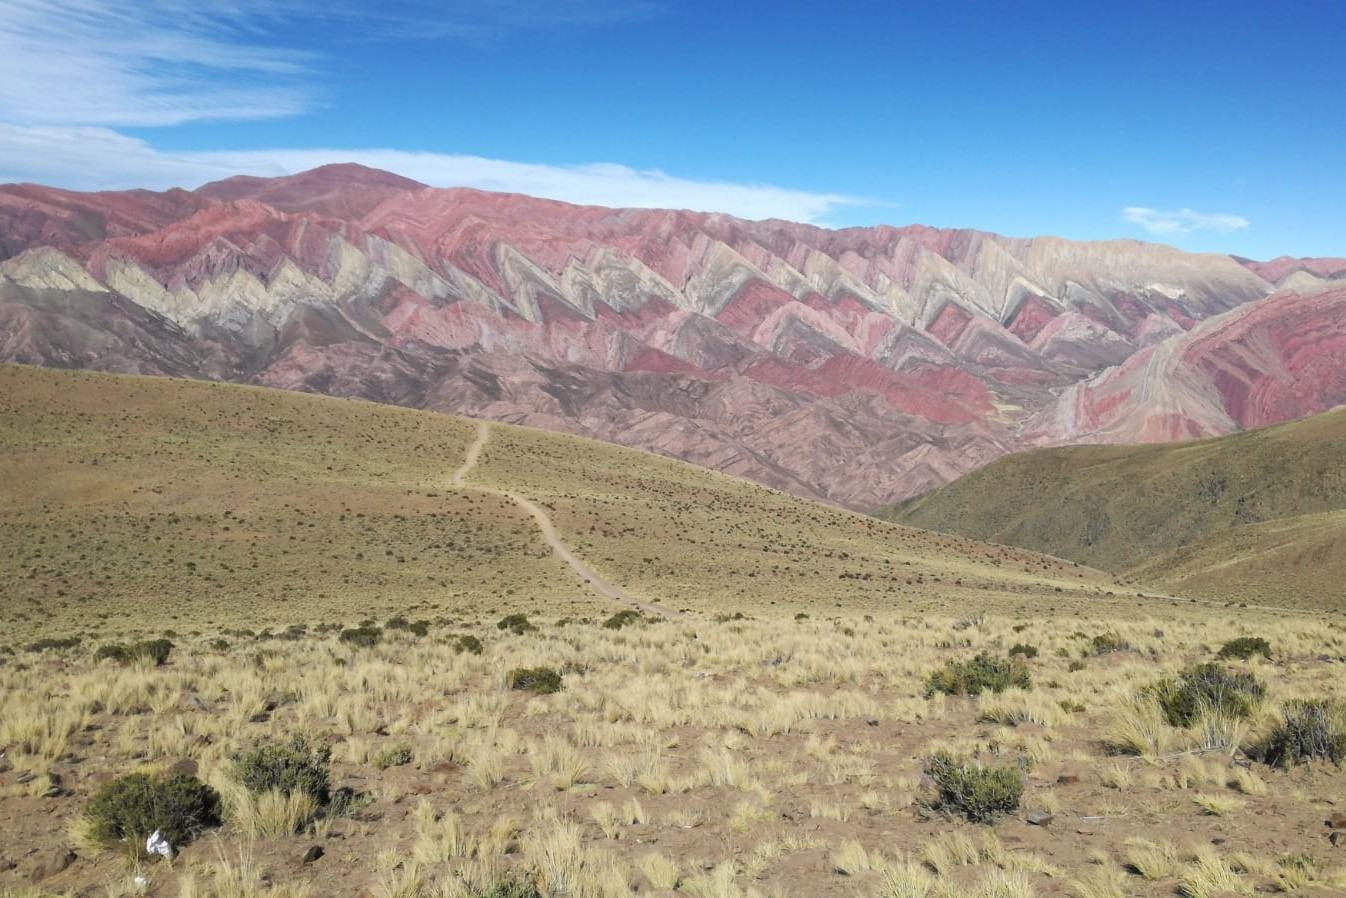 hornacal humahuaca nord-ovest argentina